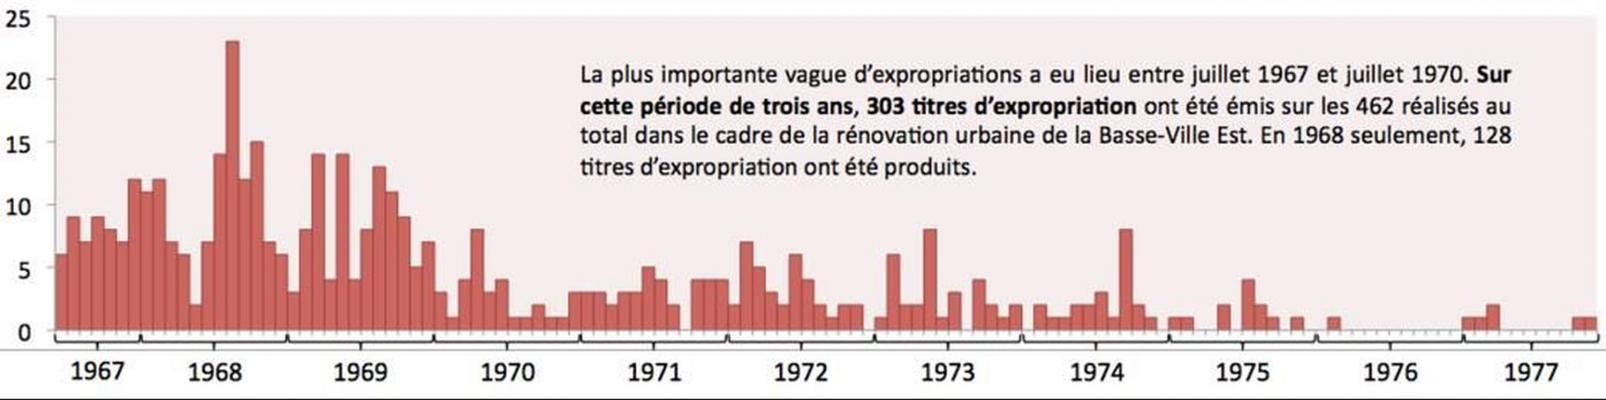 Bar chart in colour representing the number of expropriation titles issued by month and by year. Expropriations are most numerous from 1967 to 1970, and gradually decrease until 1977.